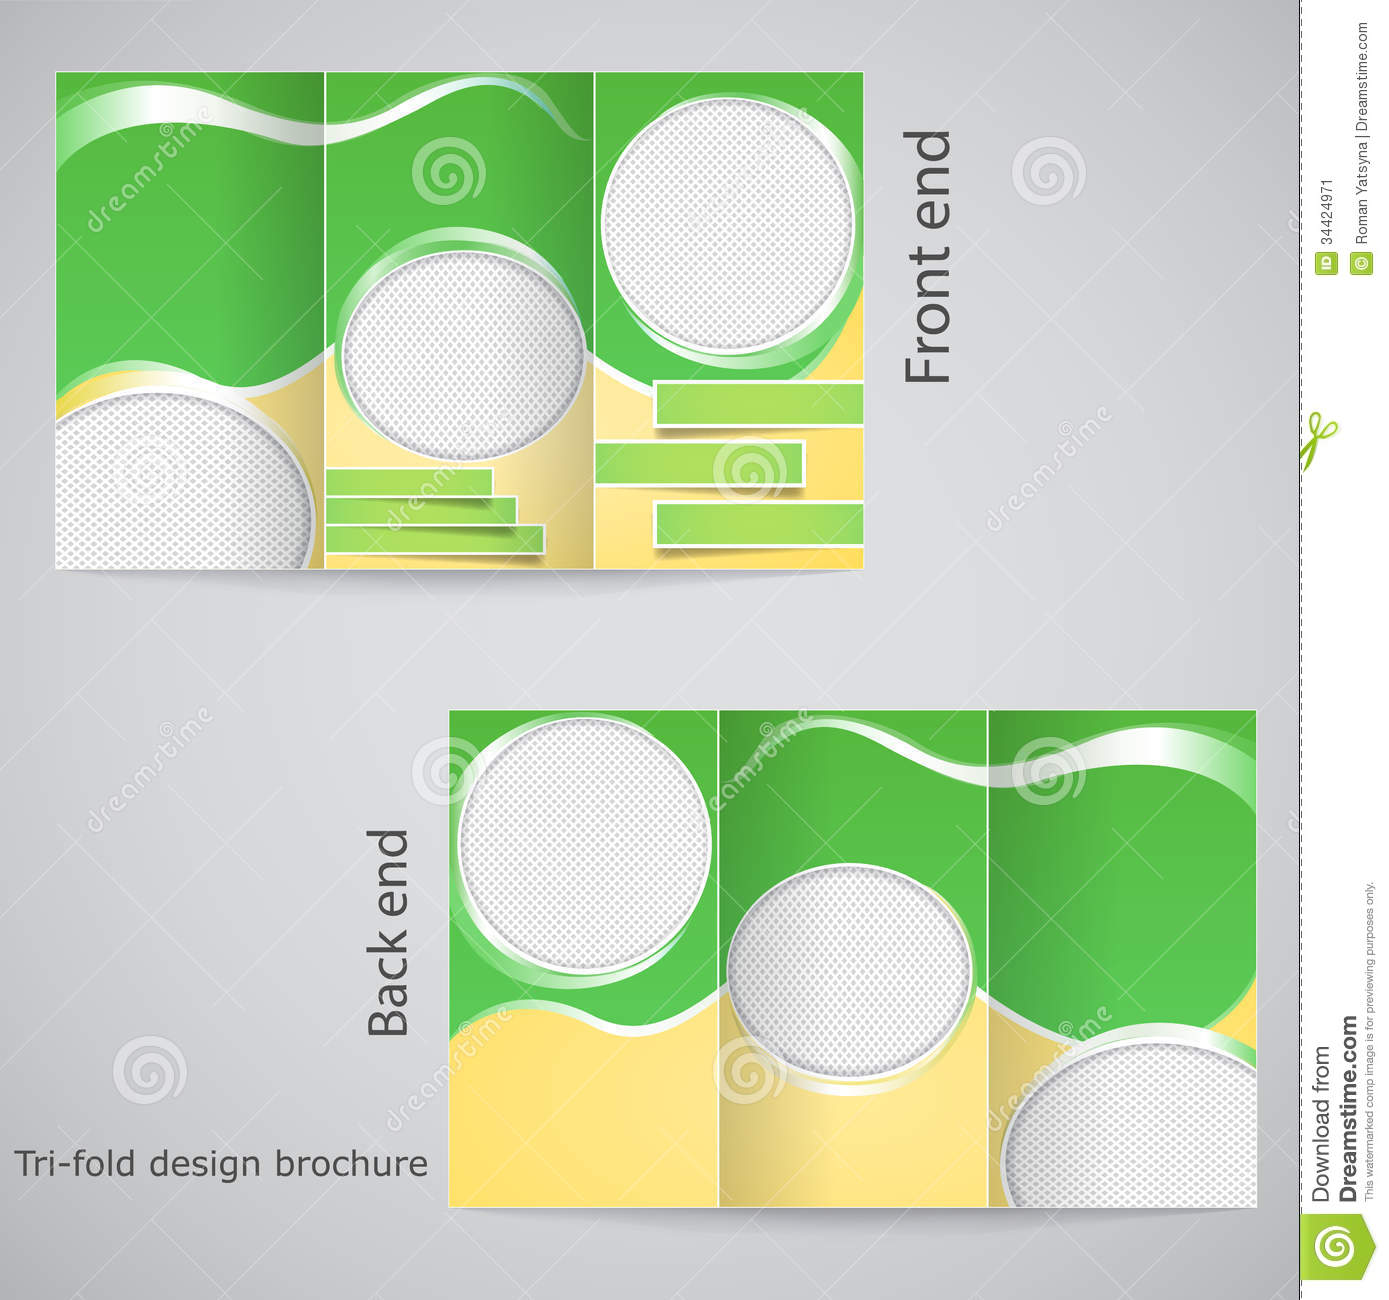 Trifold Brochure Design Stock Vector Illustration Of Fashion - Tri fold brochures templates